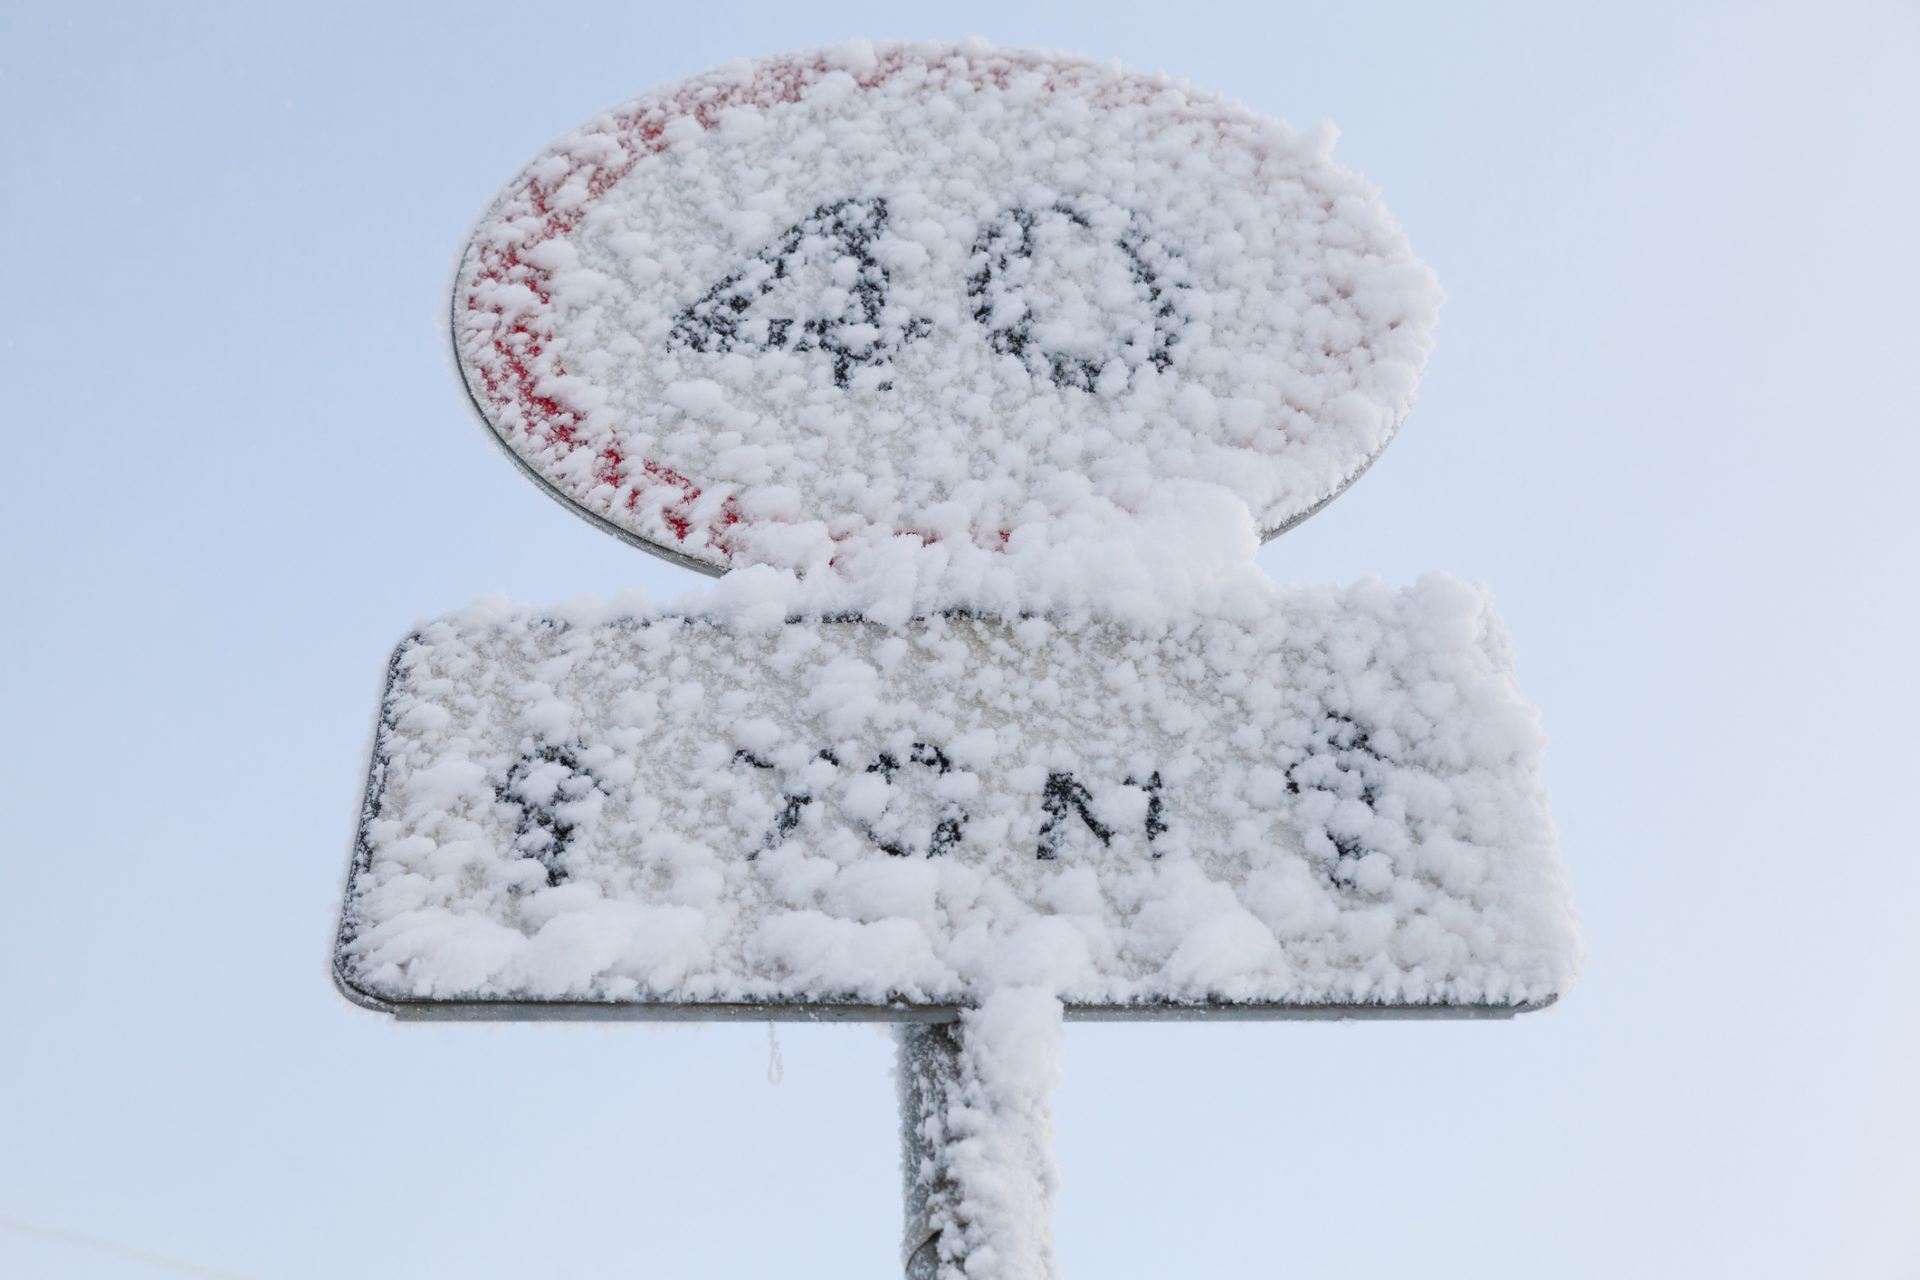 Frosted speed limit road sign in winter